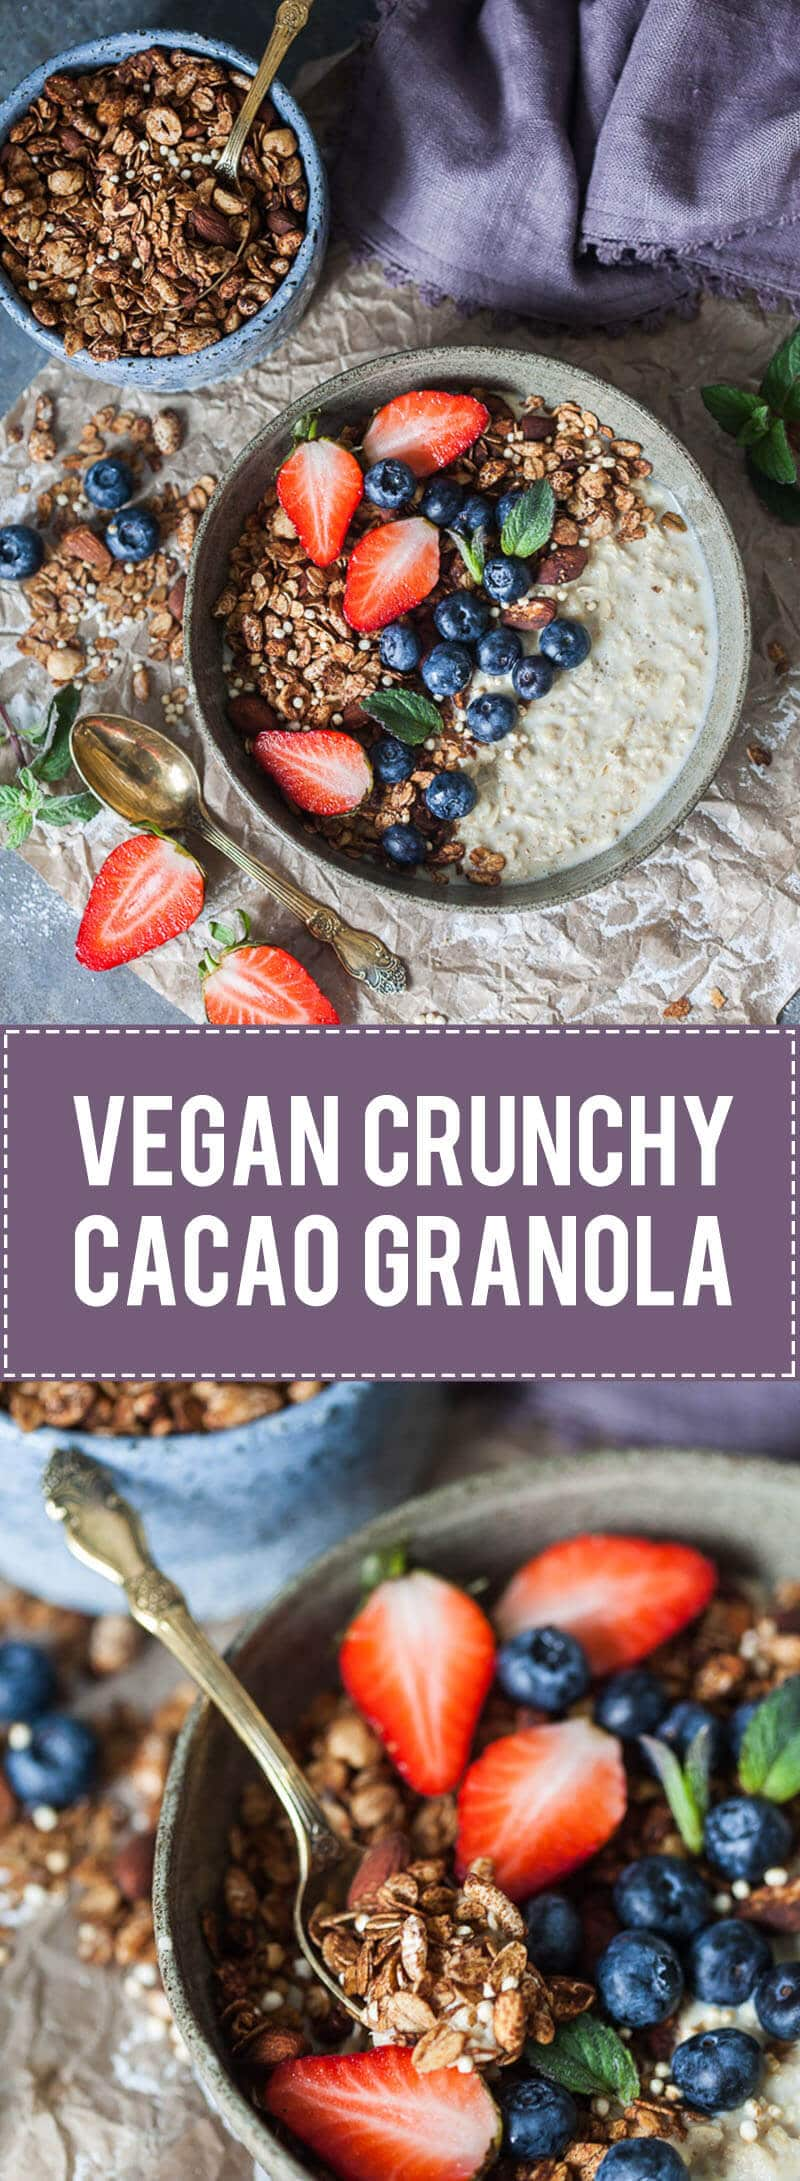 This delicious Vegan Crunchy Cacao Granola is going to become your go-to breakfast! | www.vibrantplate.com